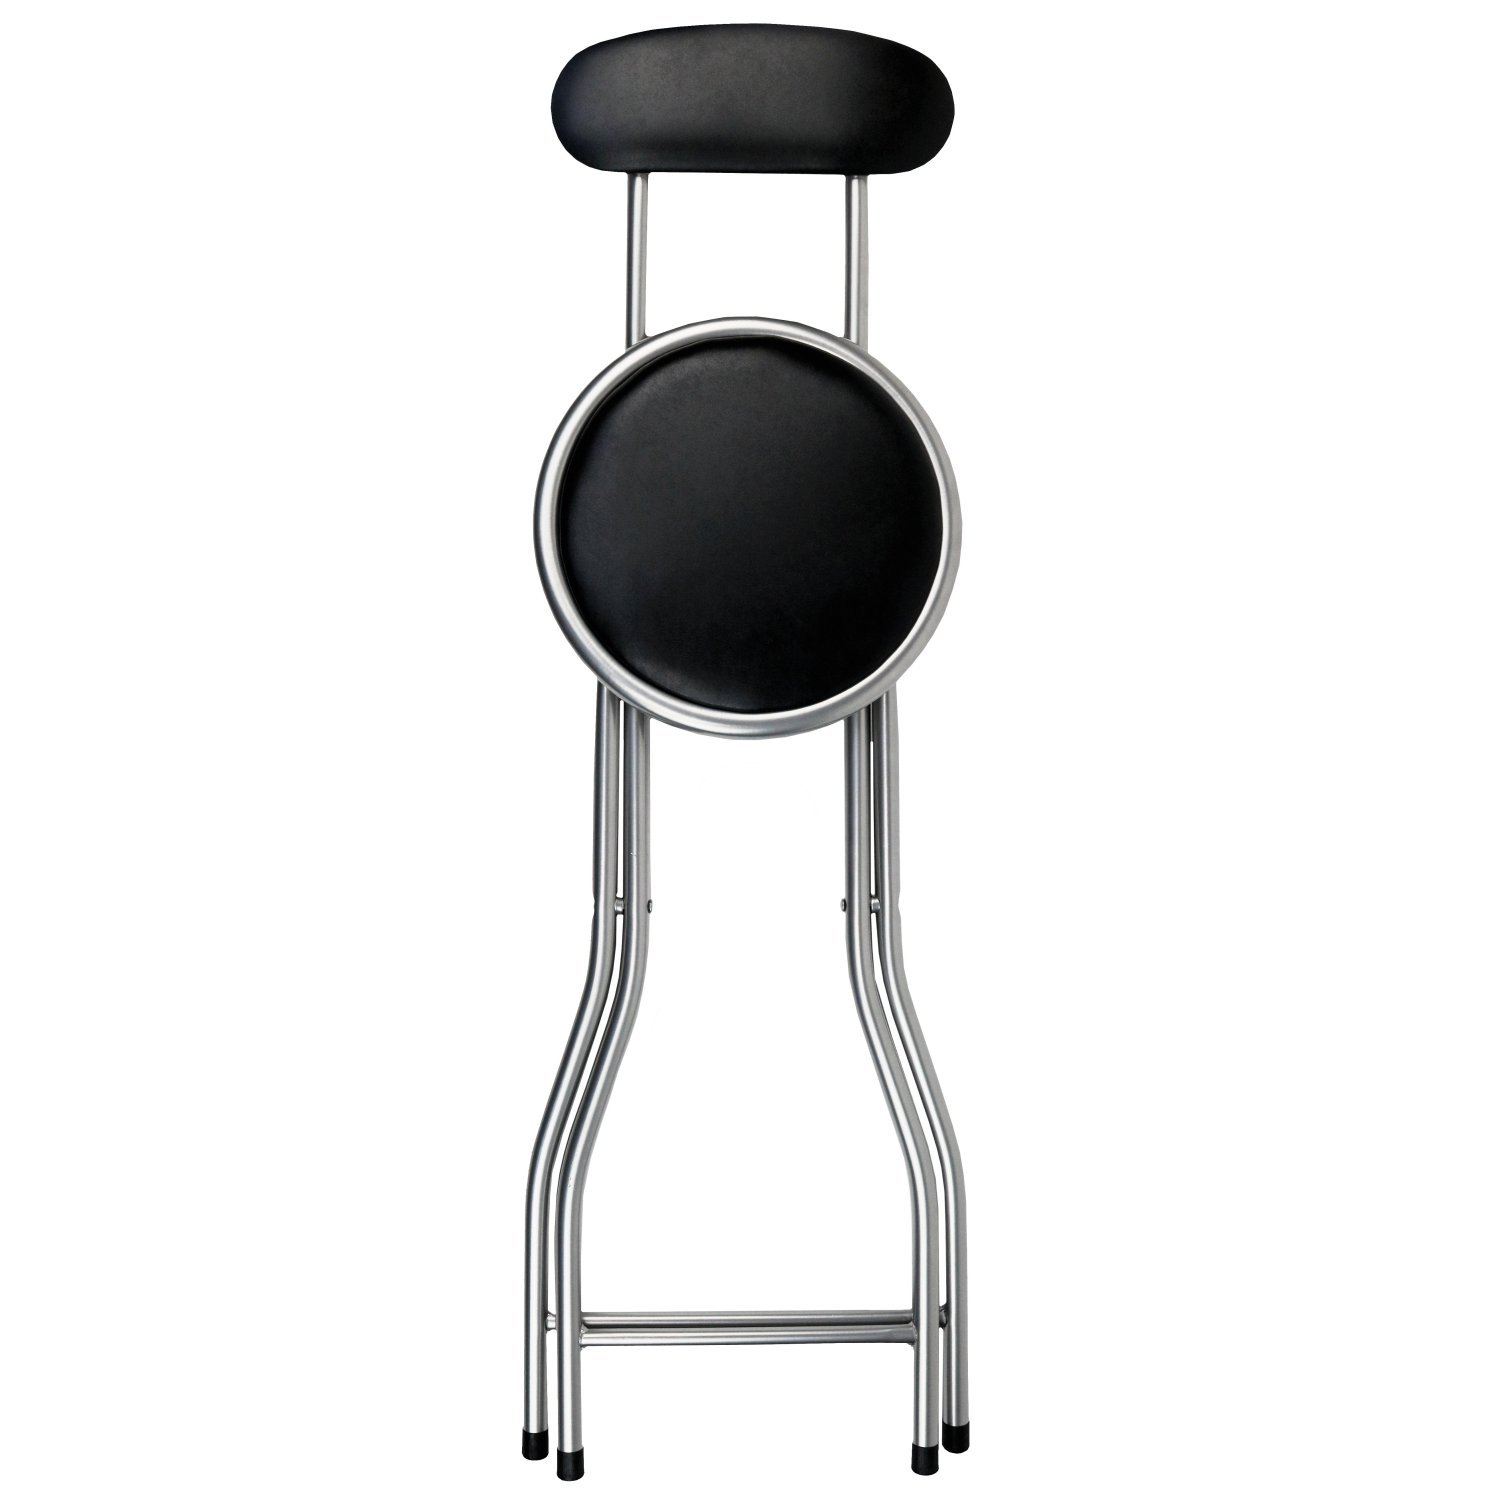 Black Padded Folding High Chair Breakfast Kitchen Bar  : 3626 black padded folding high chair breakfast kitchen bar stool seat 04 from oypla.com size 1500 x 1500 jpeg 76kB